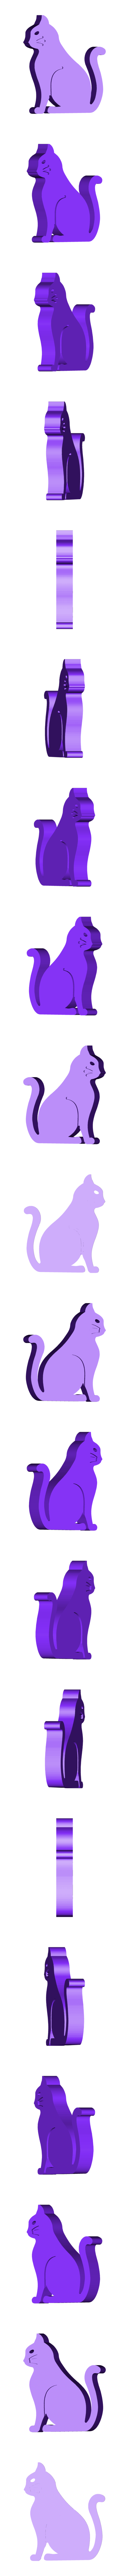 cat.stl Download free STL file Cat - Sitting with Whiskers (Countersunk Grooves) • Template to 3D print, Muzz64